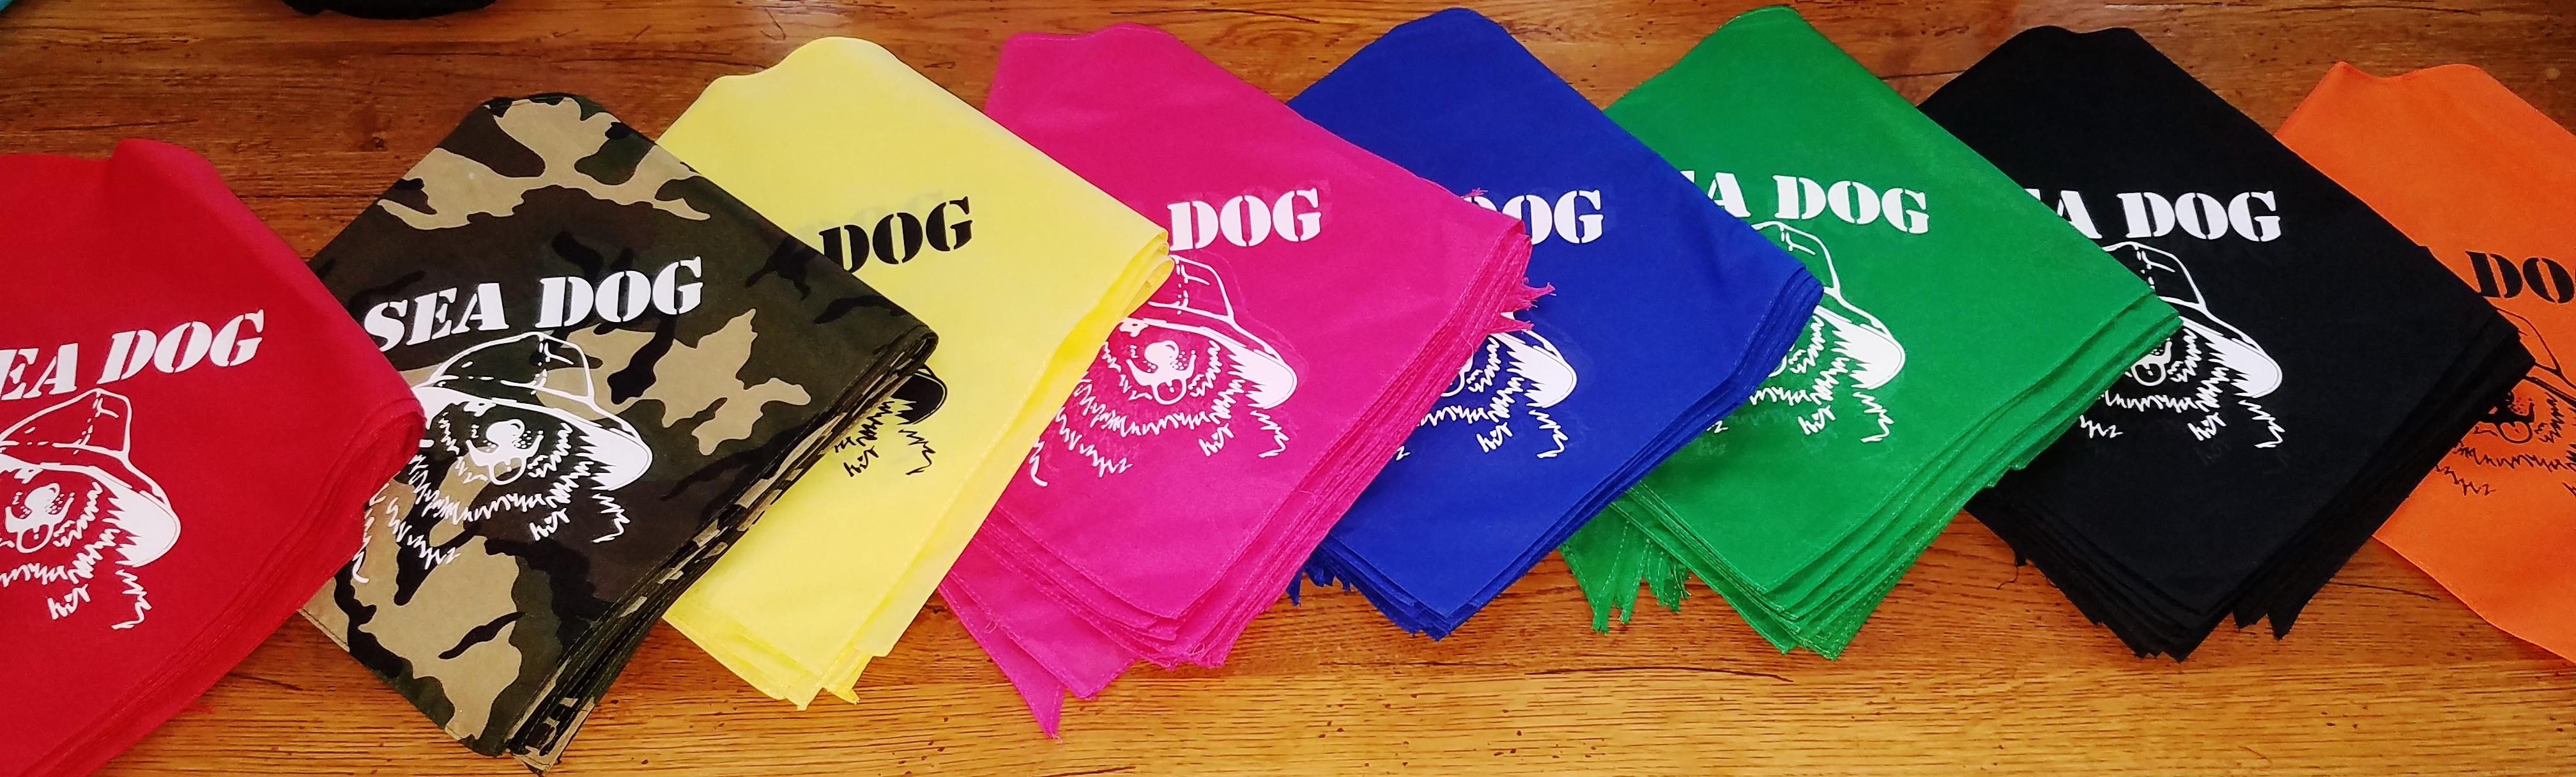 sea dog bandanas 2018